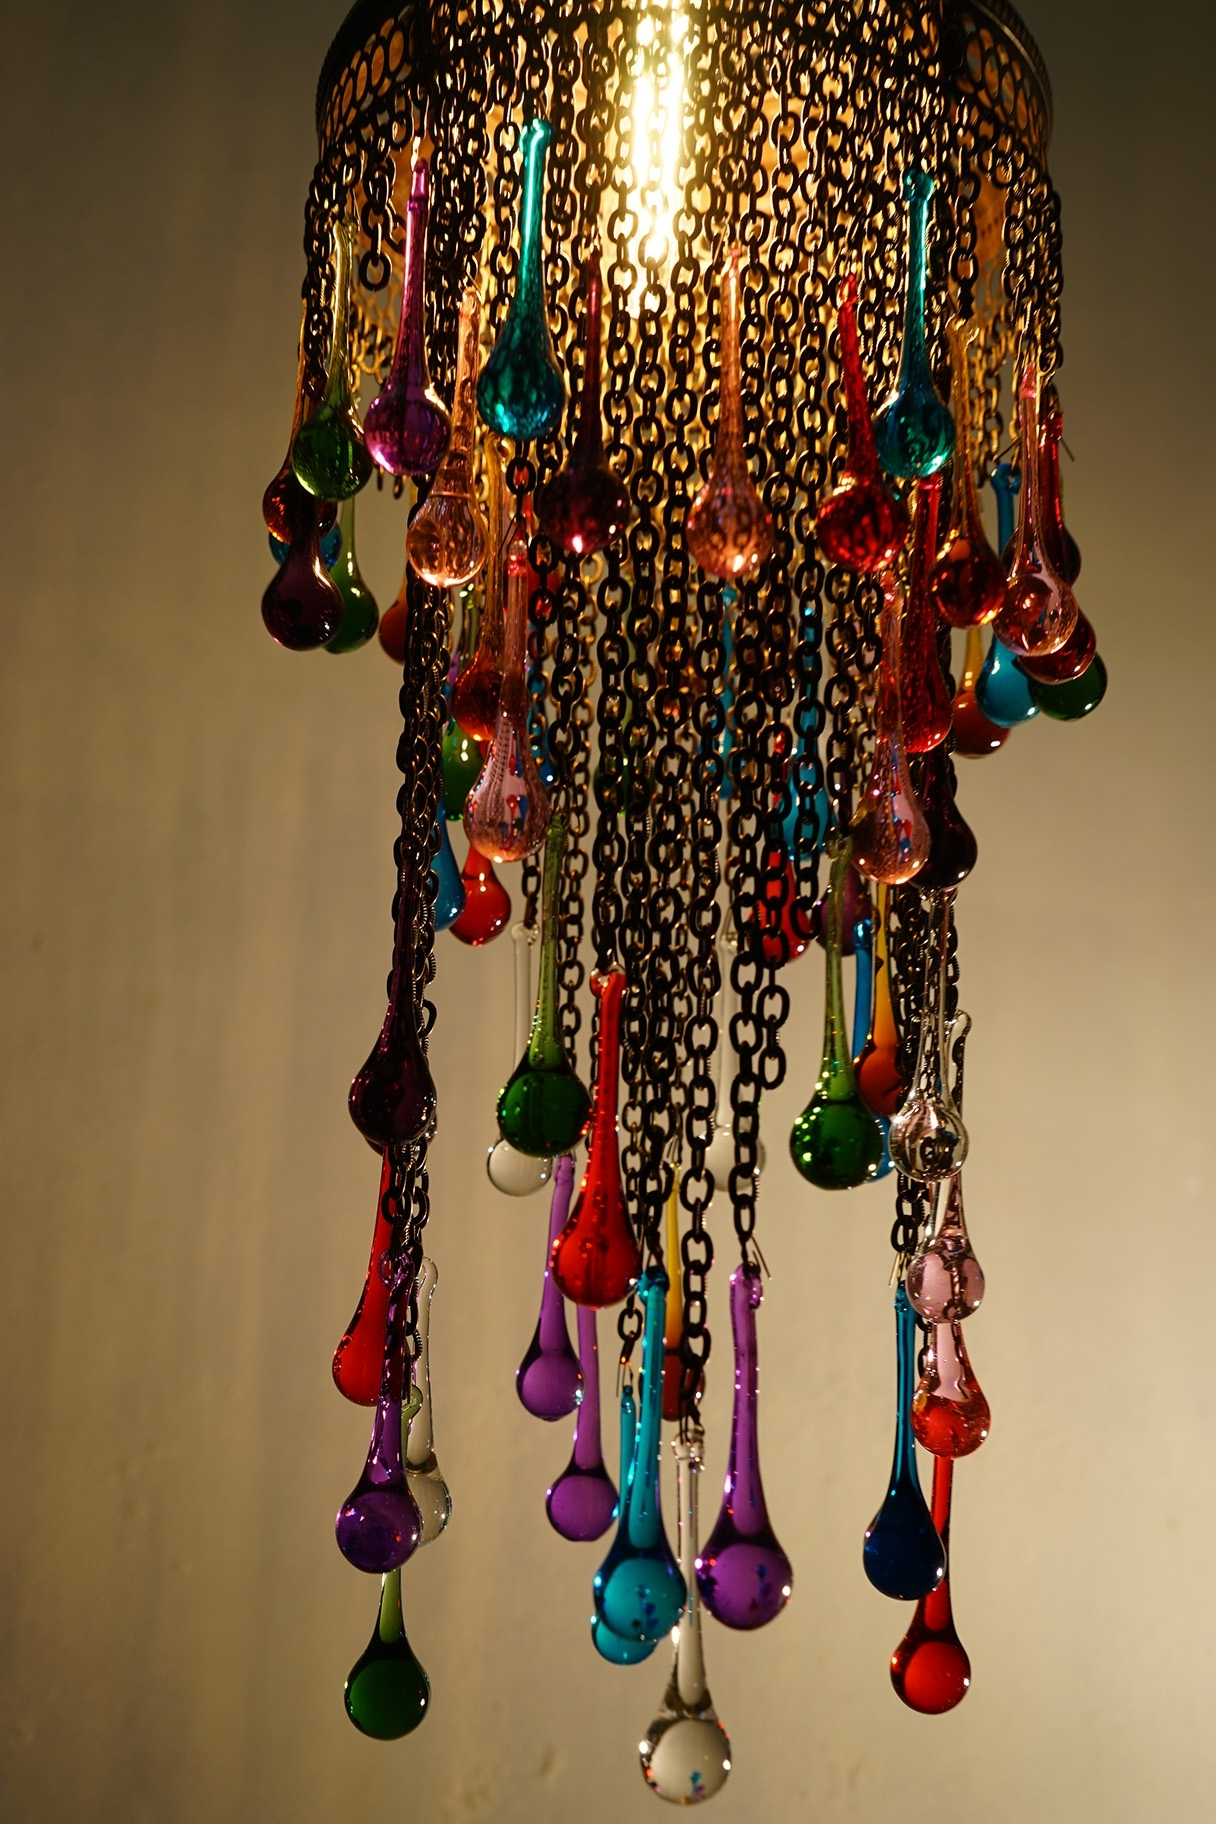 Latest Highest Quality Mosaic Chandeliers & Turkish Lights Pertaining To Colourful Chandeliers (View 12 of 20)